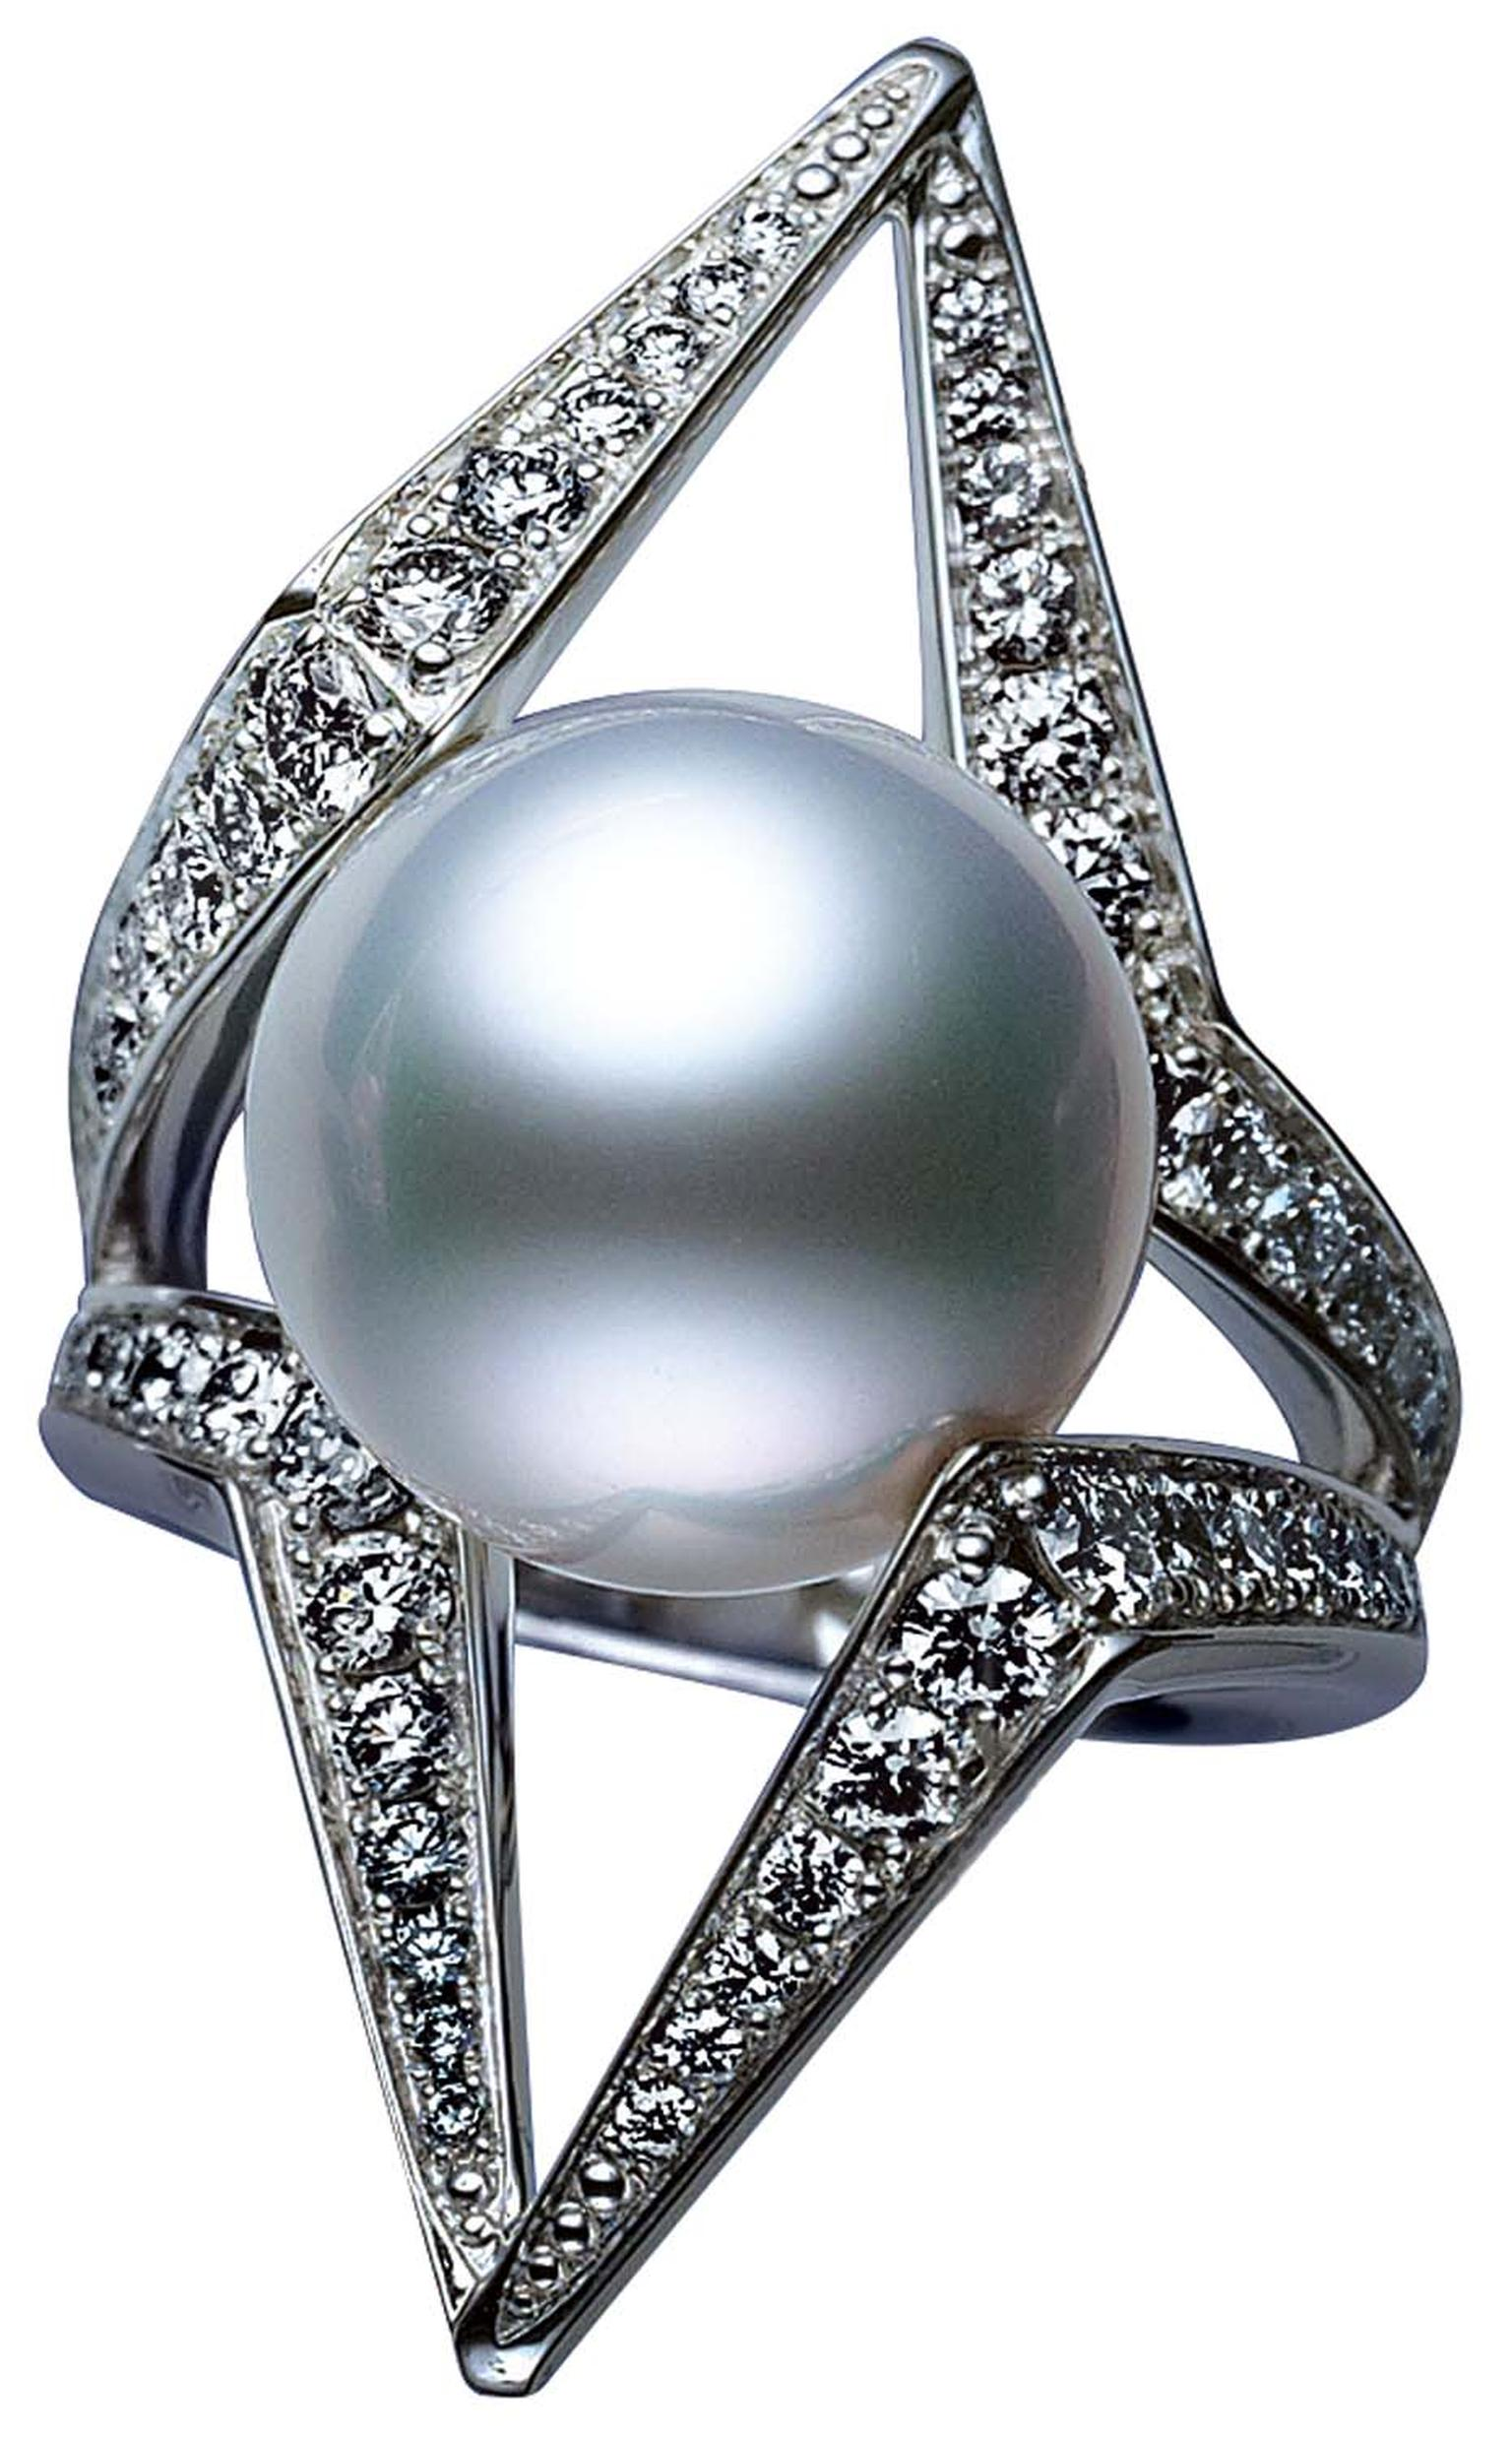 Mikimoto World of Creativity collection Morning Star ring with a cultured South Sea pearl set amongst angular diamond pavé lines.